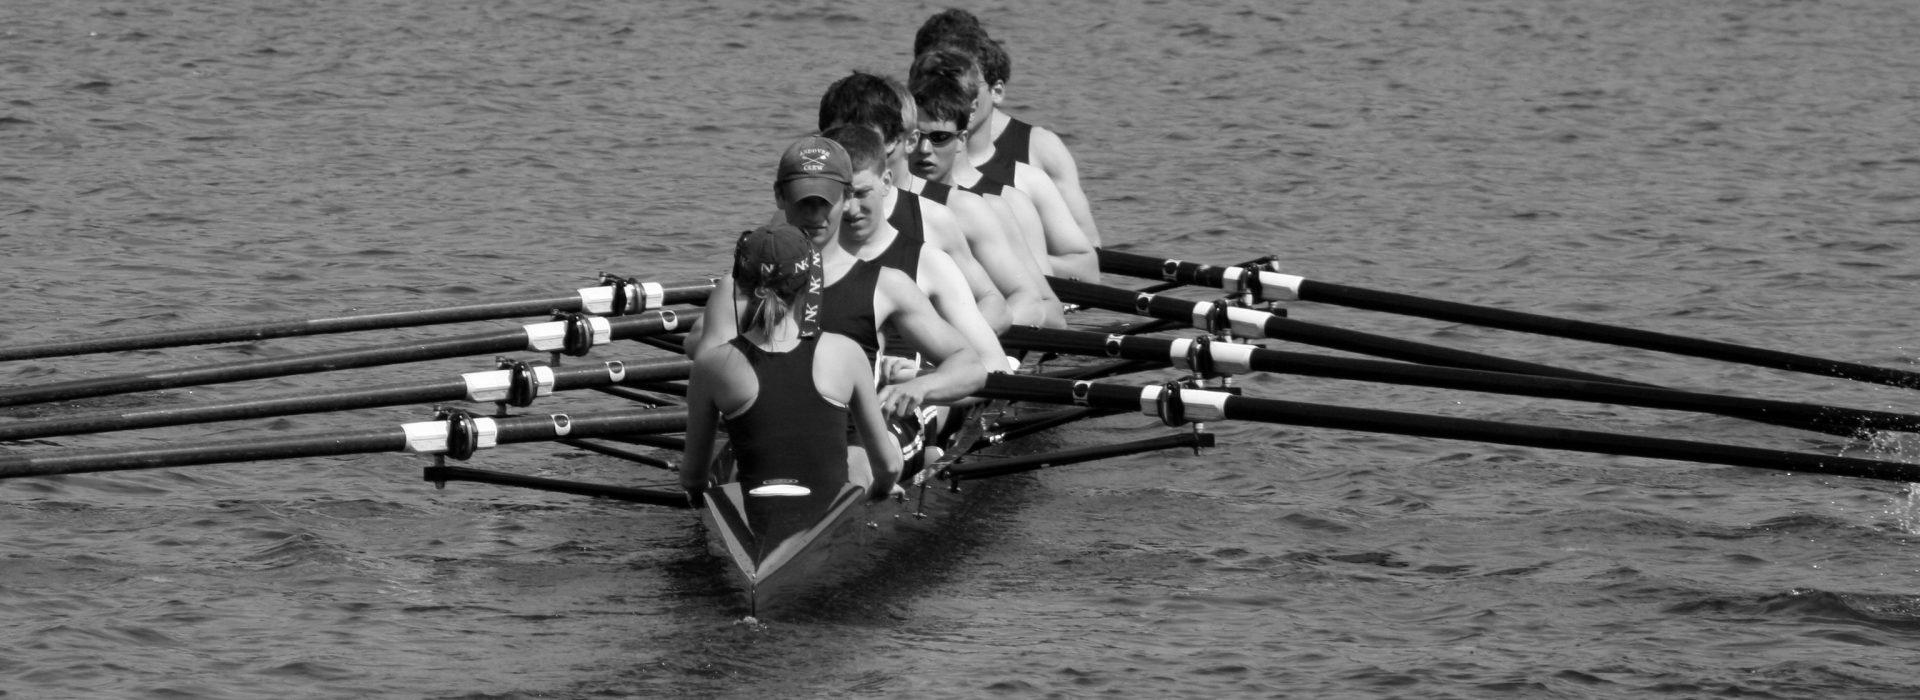 rowing-3488948